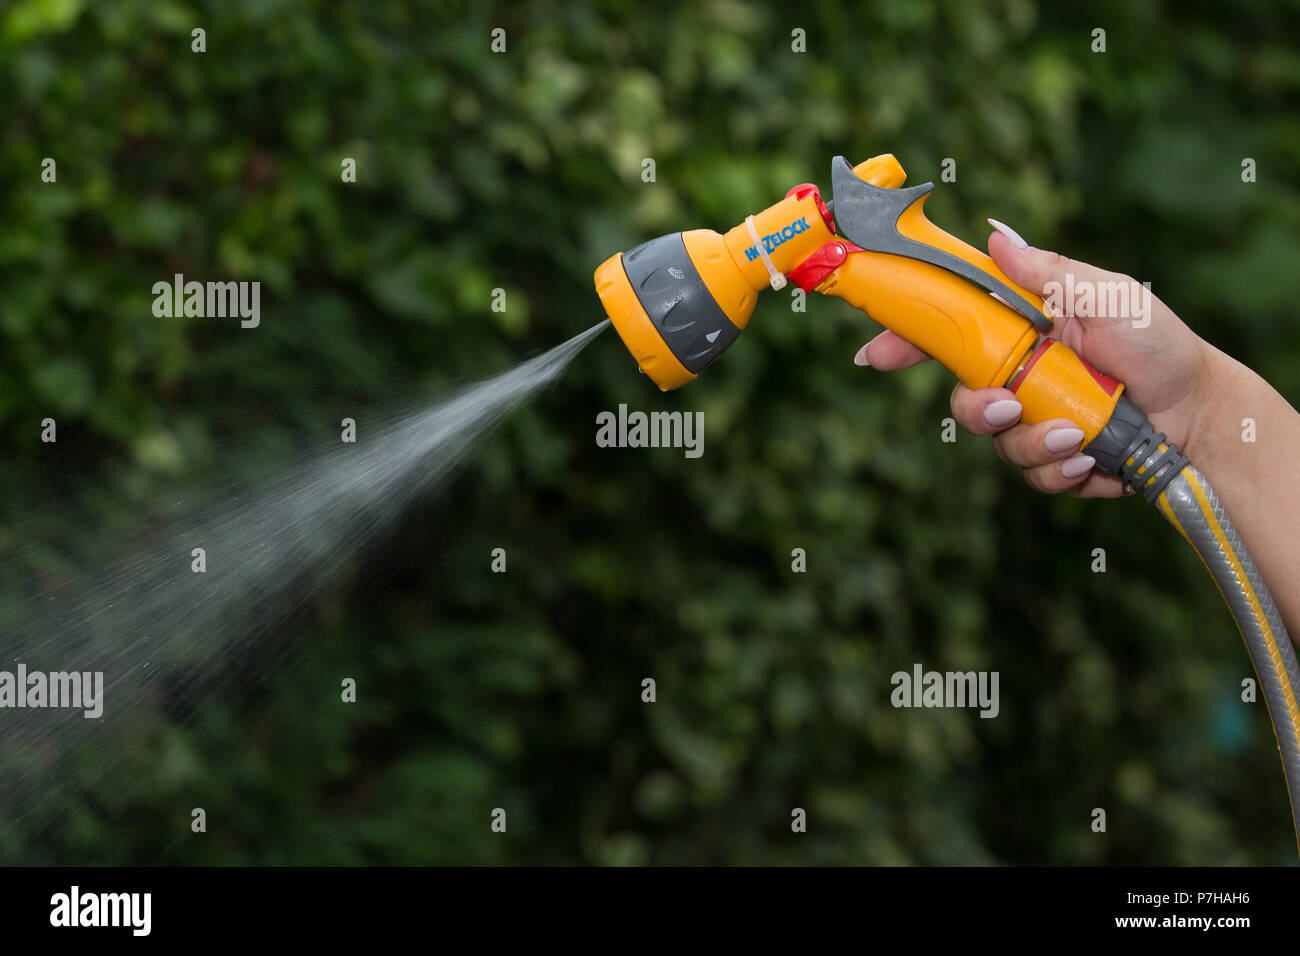 A uses a hose pipe in Nottinghamshire before a possible hosepipe ban takeseffect in the UK. - Stock Image